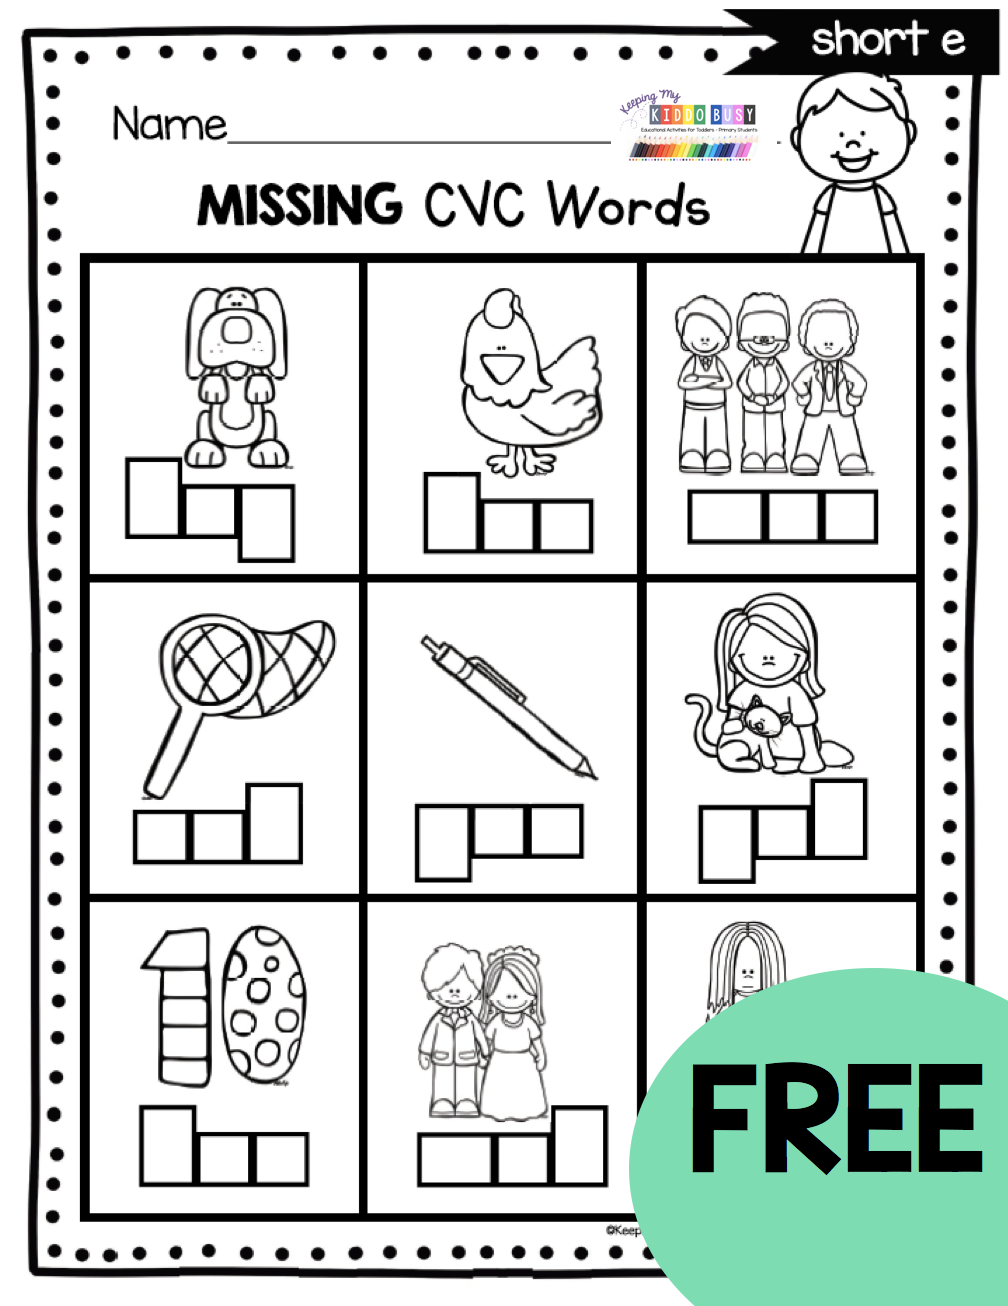 hight resolution of FREE Phonics Worksheets and activities for teaching short vowels CVC words  kindergarten first grade   Cvc words kindergarten